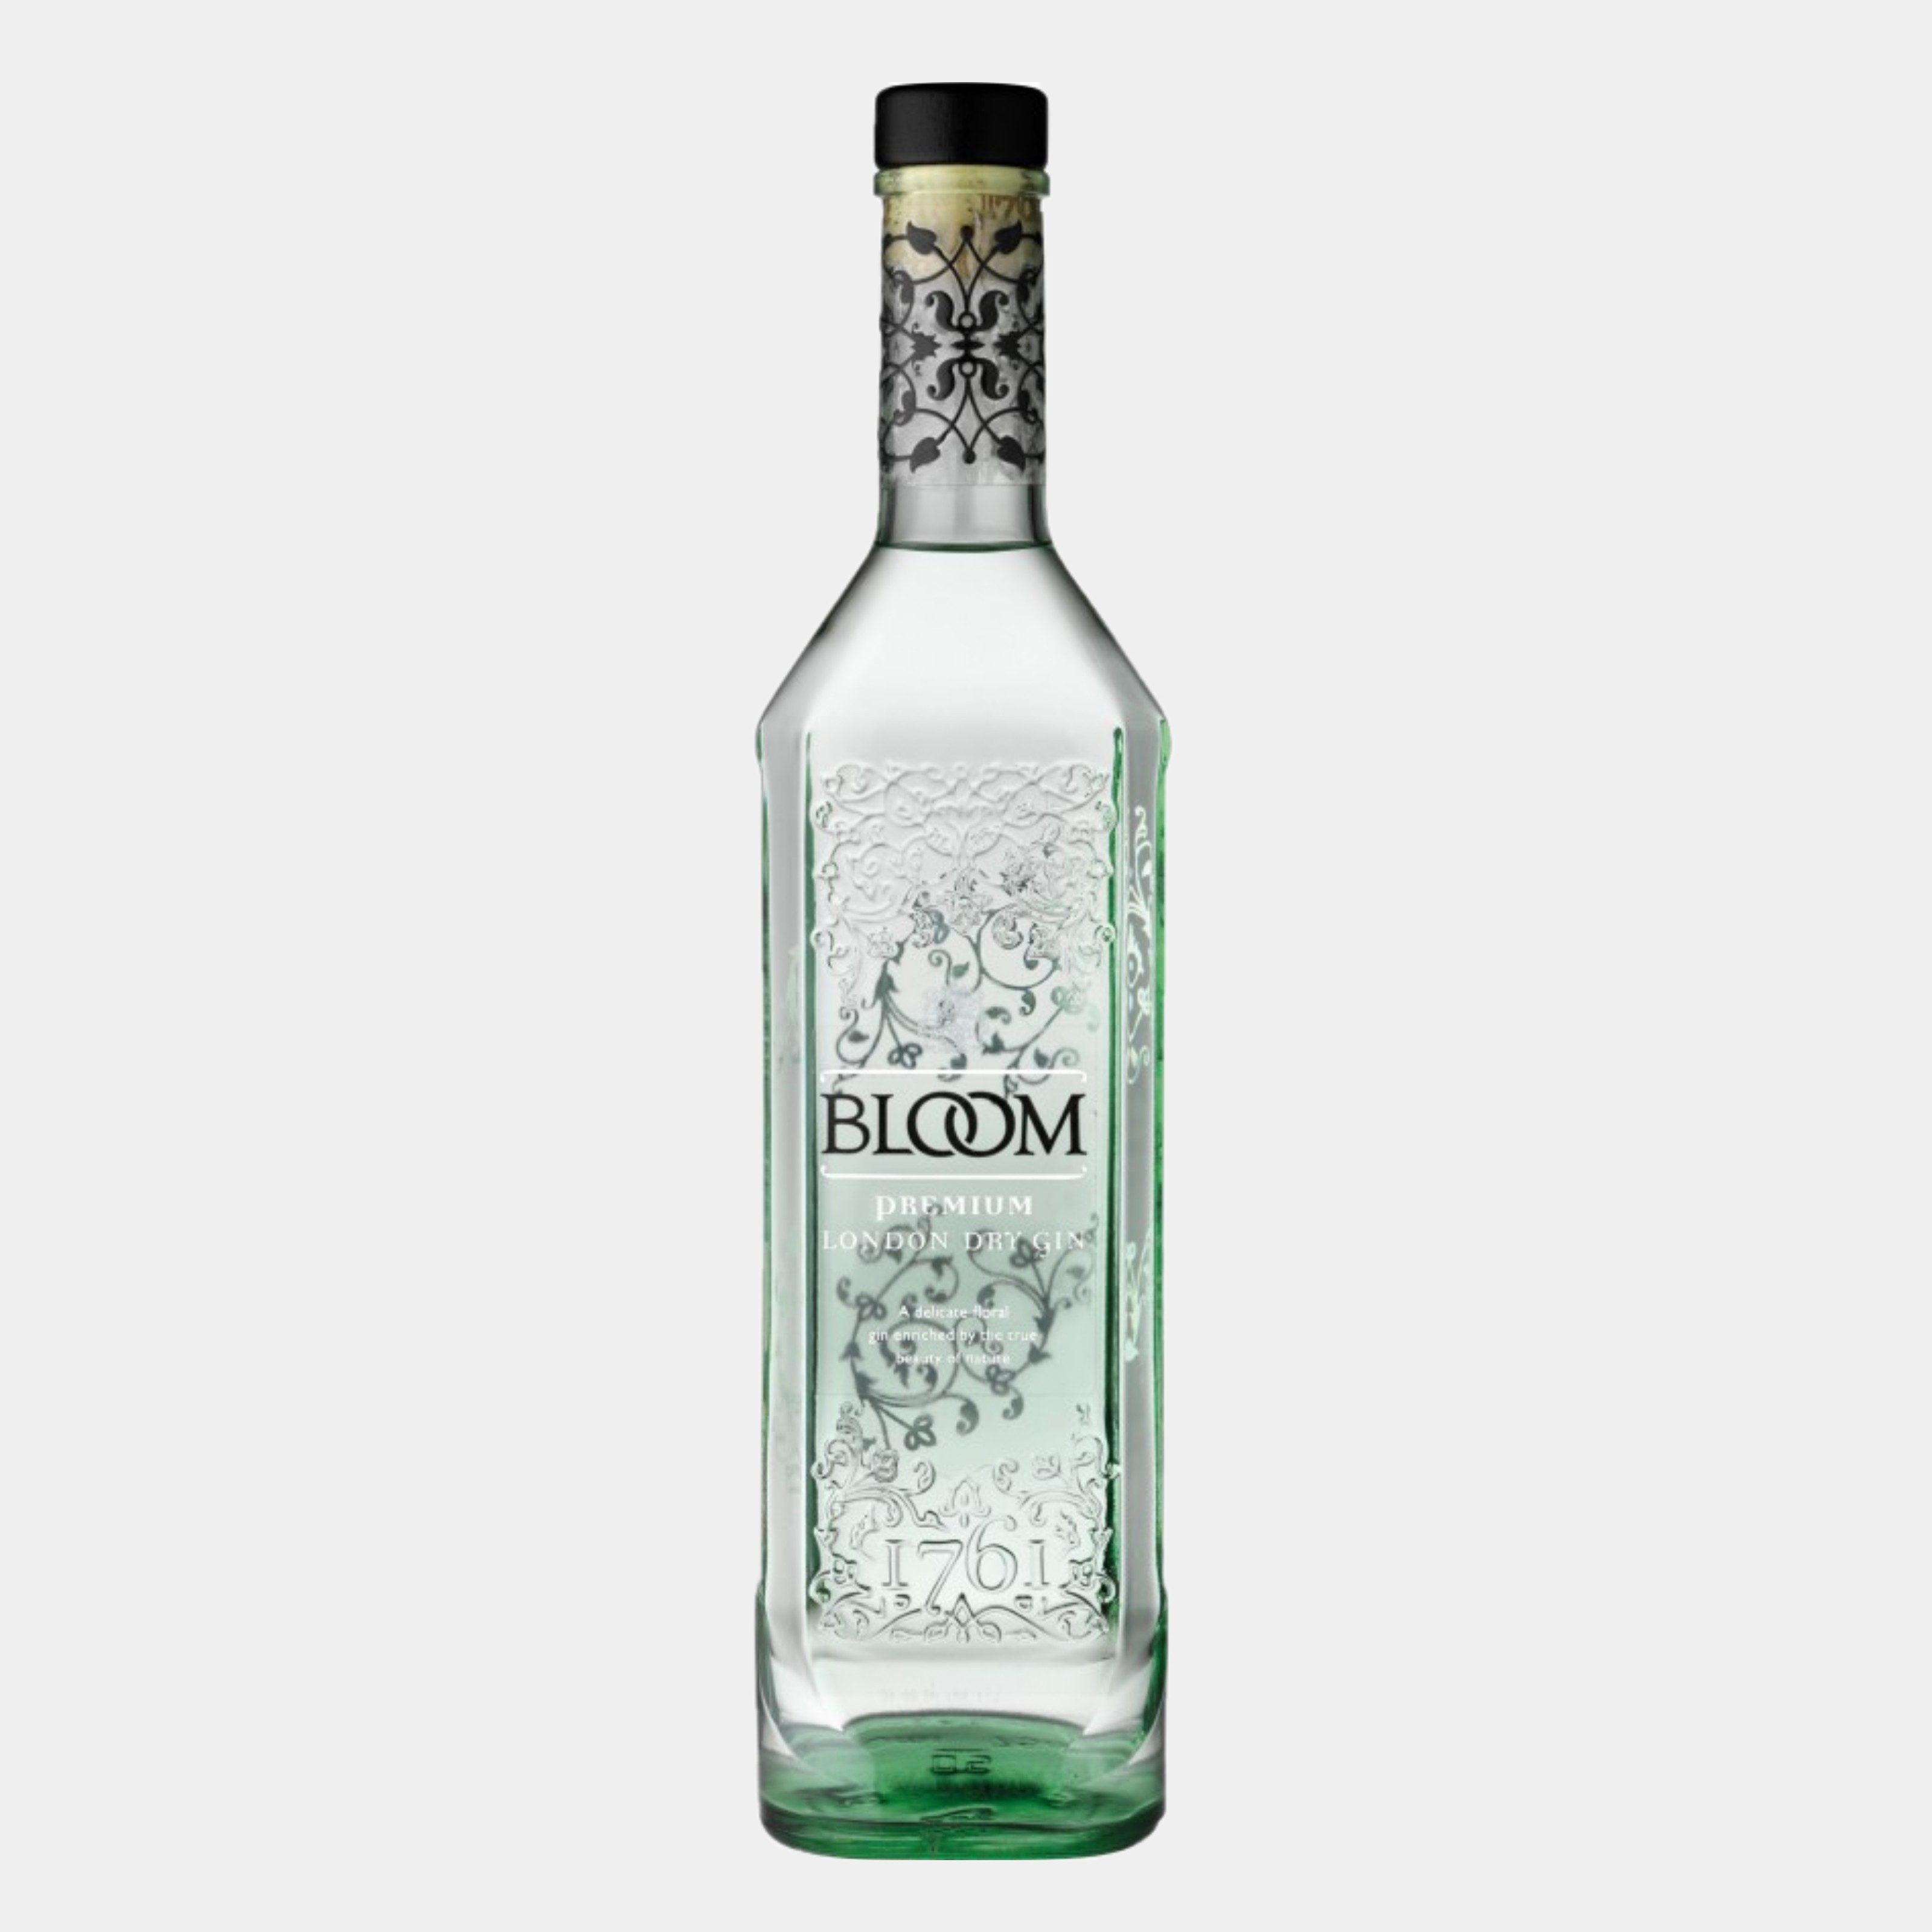 Bloom Premium London Dry Gin 0.7L 40% Alk.